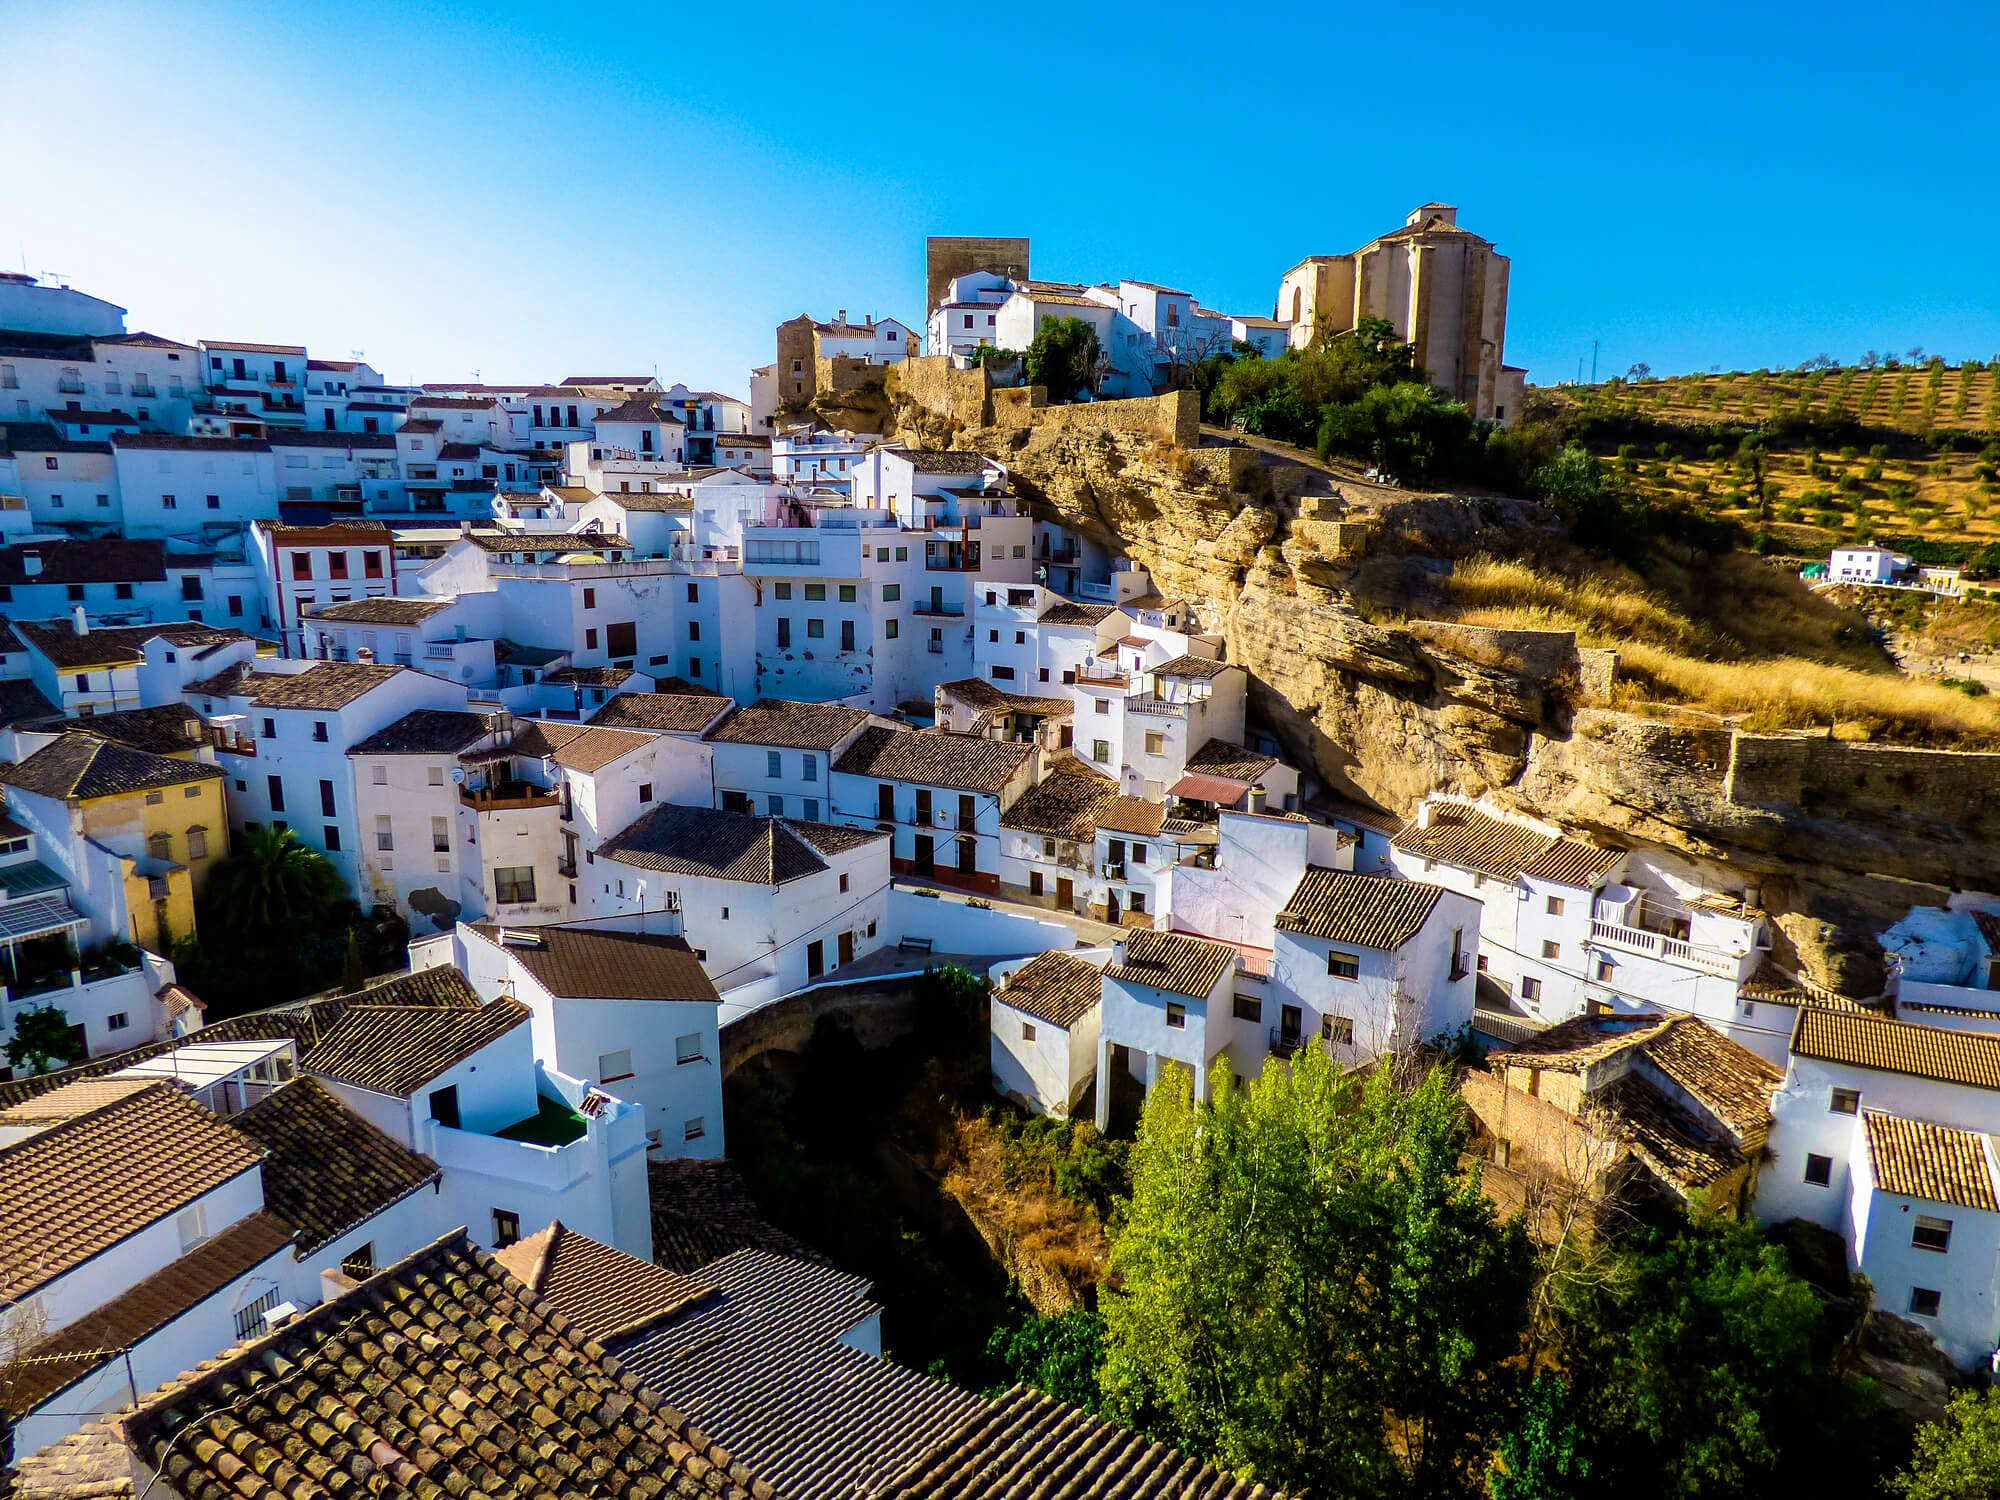 These 11 hidden villages have been selected as the most beautiful in Spain